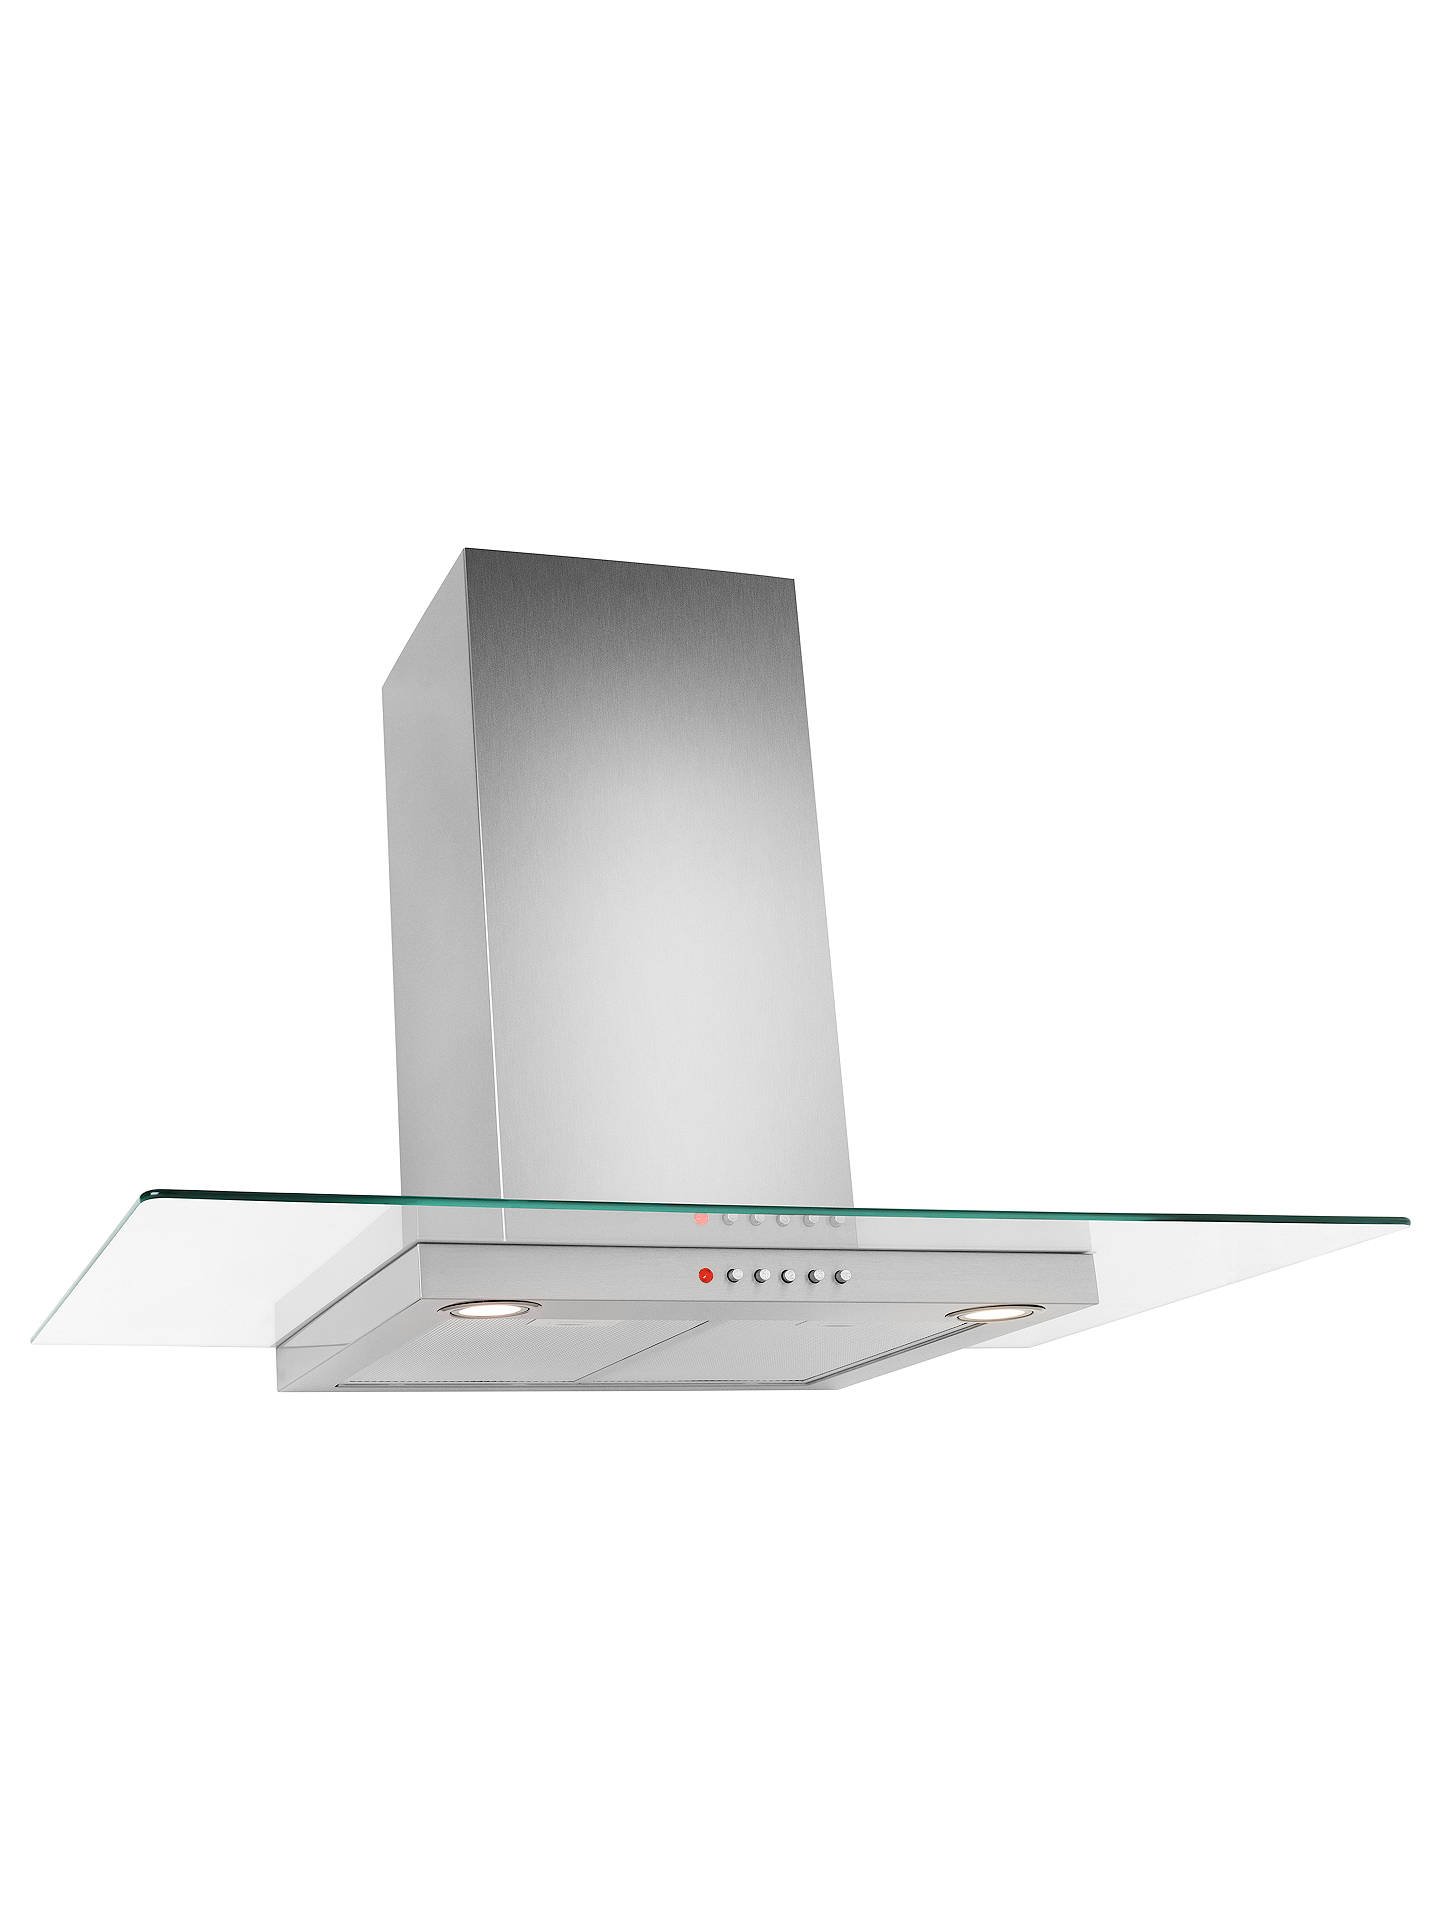 BuyJohn Lewis JLHDA910 Chimney Cooker Hood, Stainless Steel and Flat Clear Glass Online at johnlewis.com